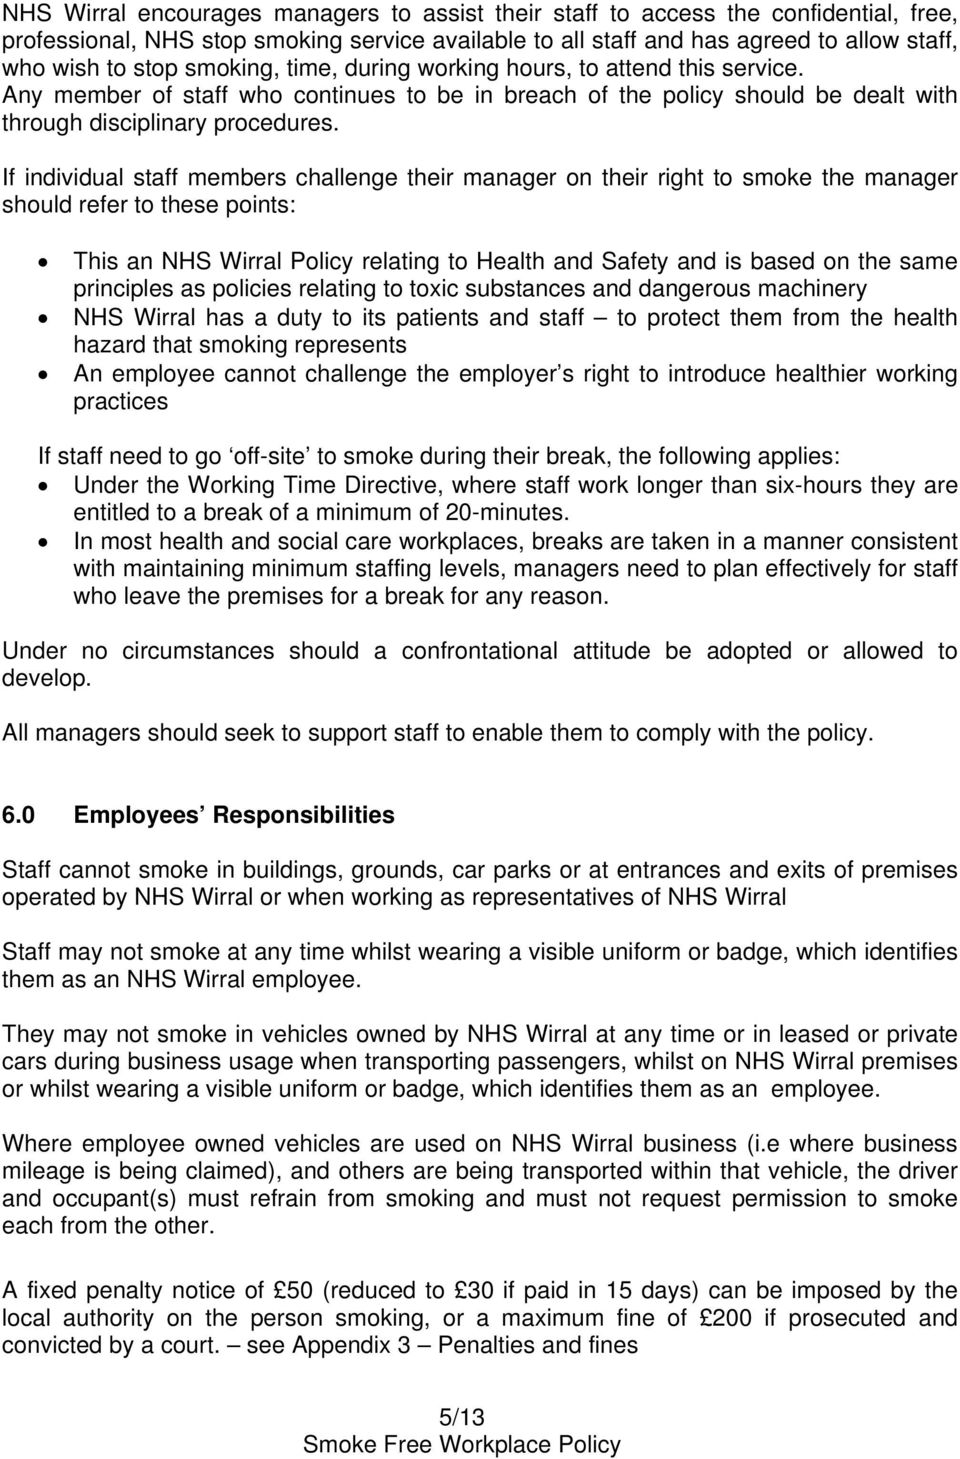 If individual staff members challenge their manager on their right to smoke the manager should refer to these points: This an NHS Wirral Policy relating to Health and Safety and is based on the same